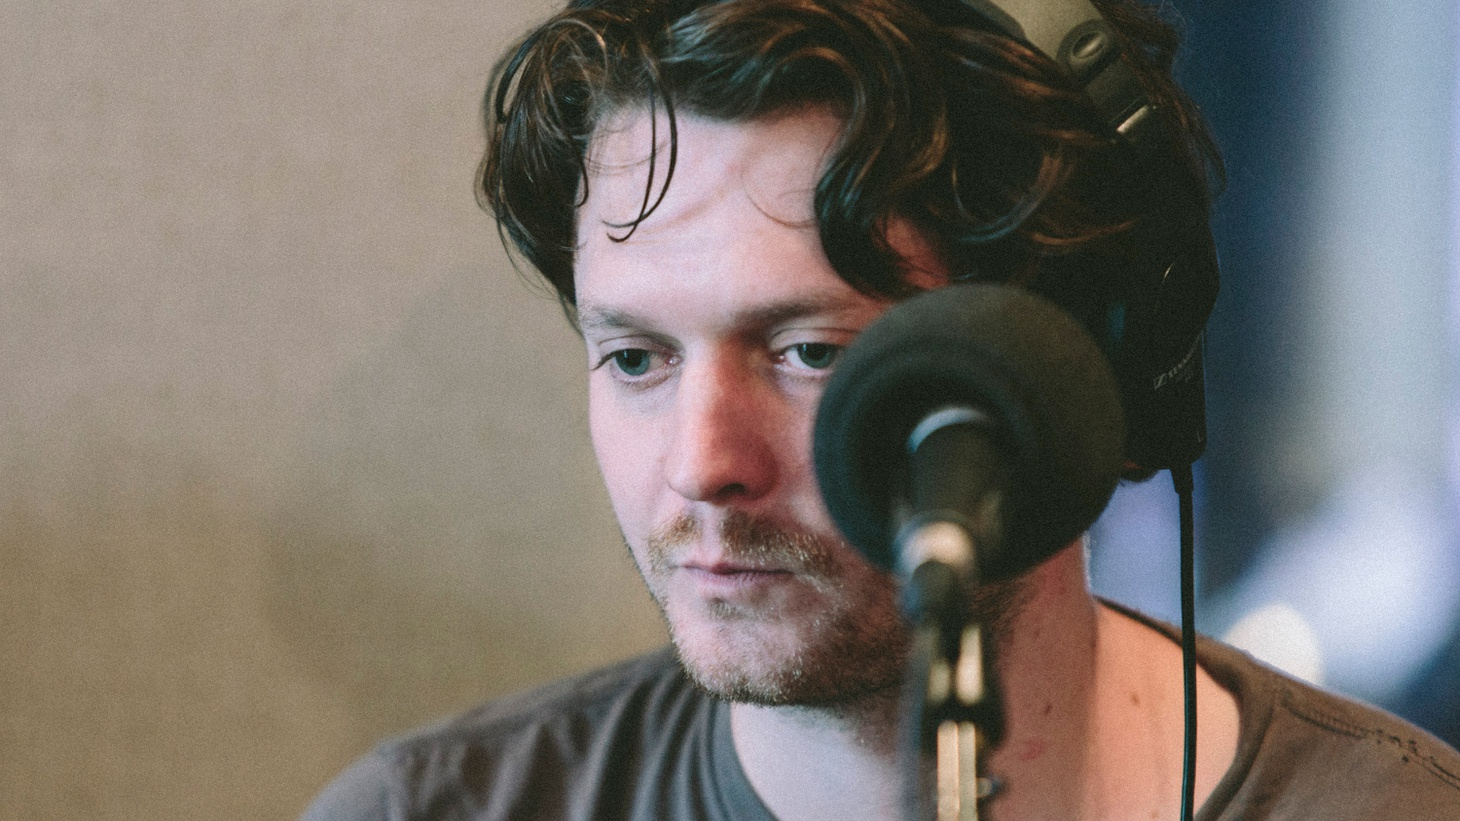 Zach Condon recorded his debut album as Beirut at age 18 after dropping out of college and running away to Paris. A decade later, he found creative inspiration in his newest international home – Turkey -- for his fourth album, No No No. He plays songs from across his discography in this live session recorded at Cutting Room Studios in New York.